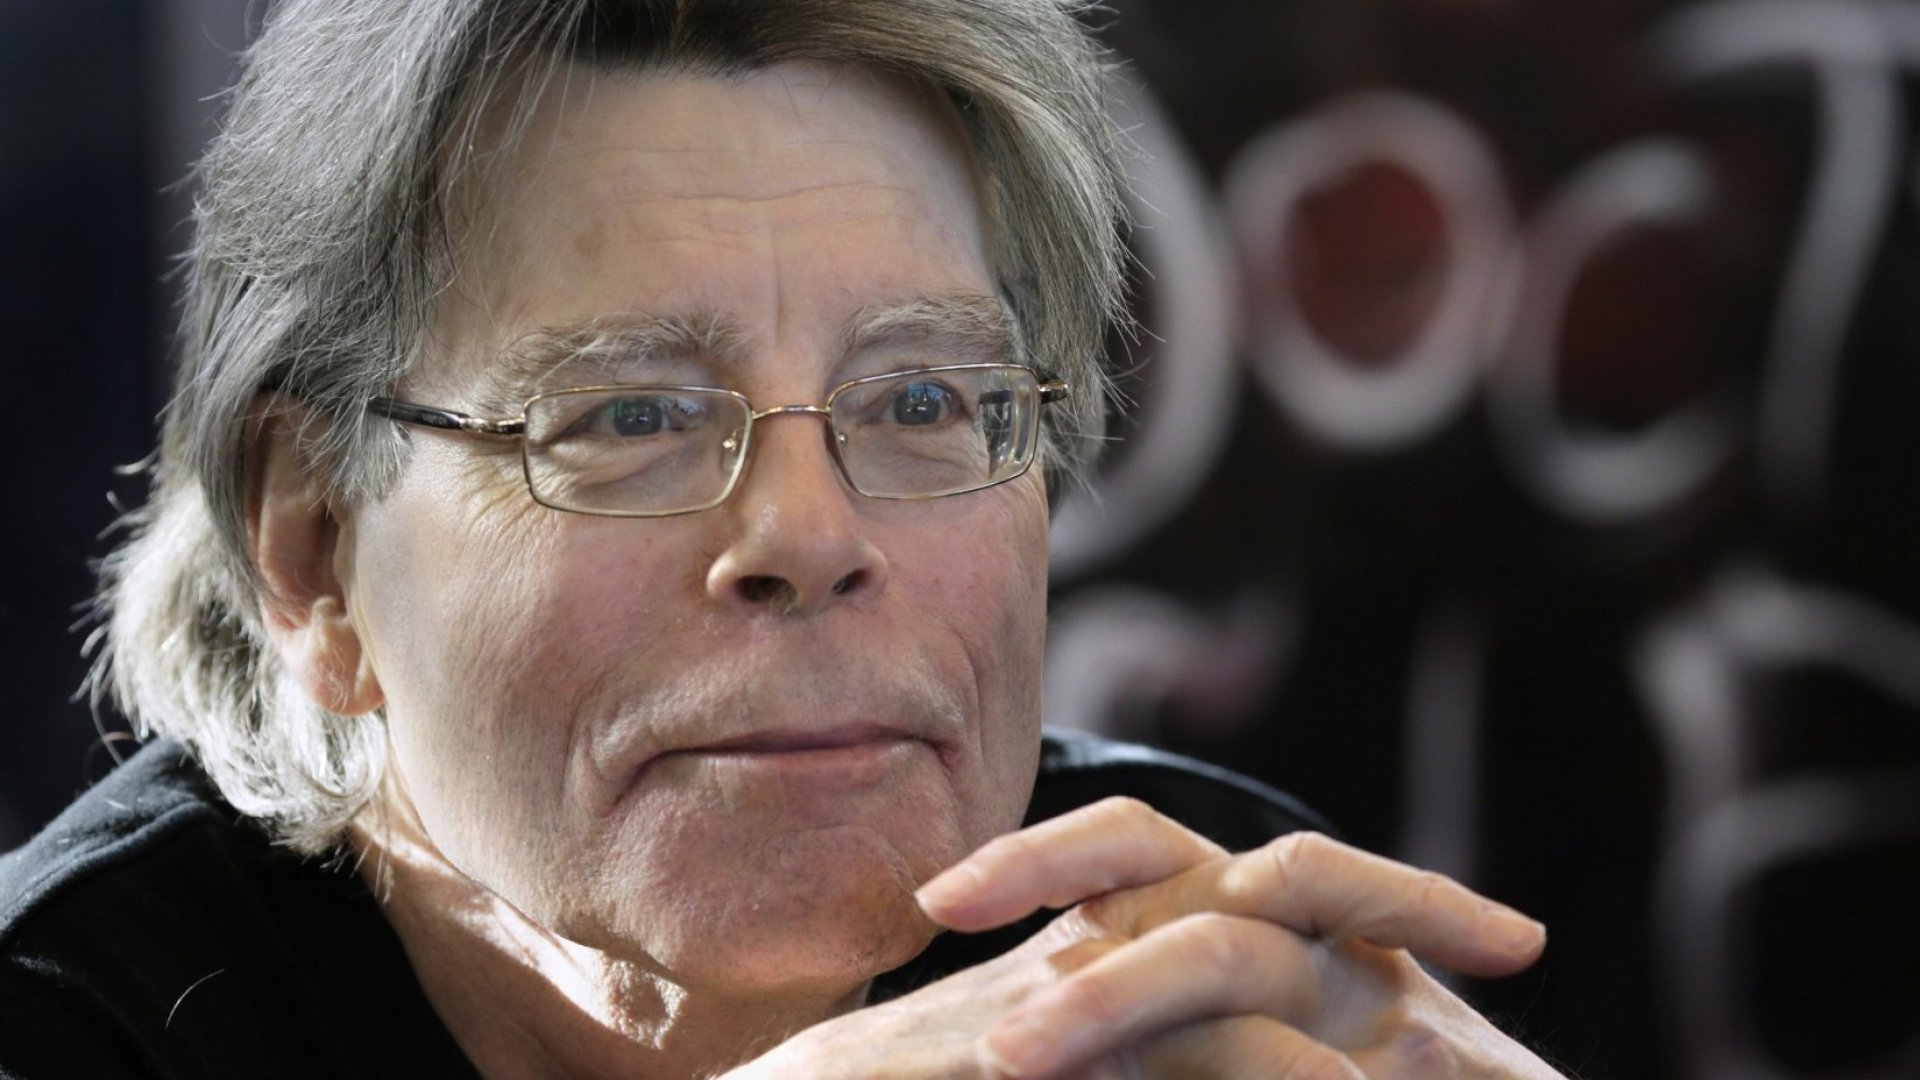 3 Killer Lessons From Stephen King's Insanely Productive Writing Routine